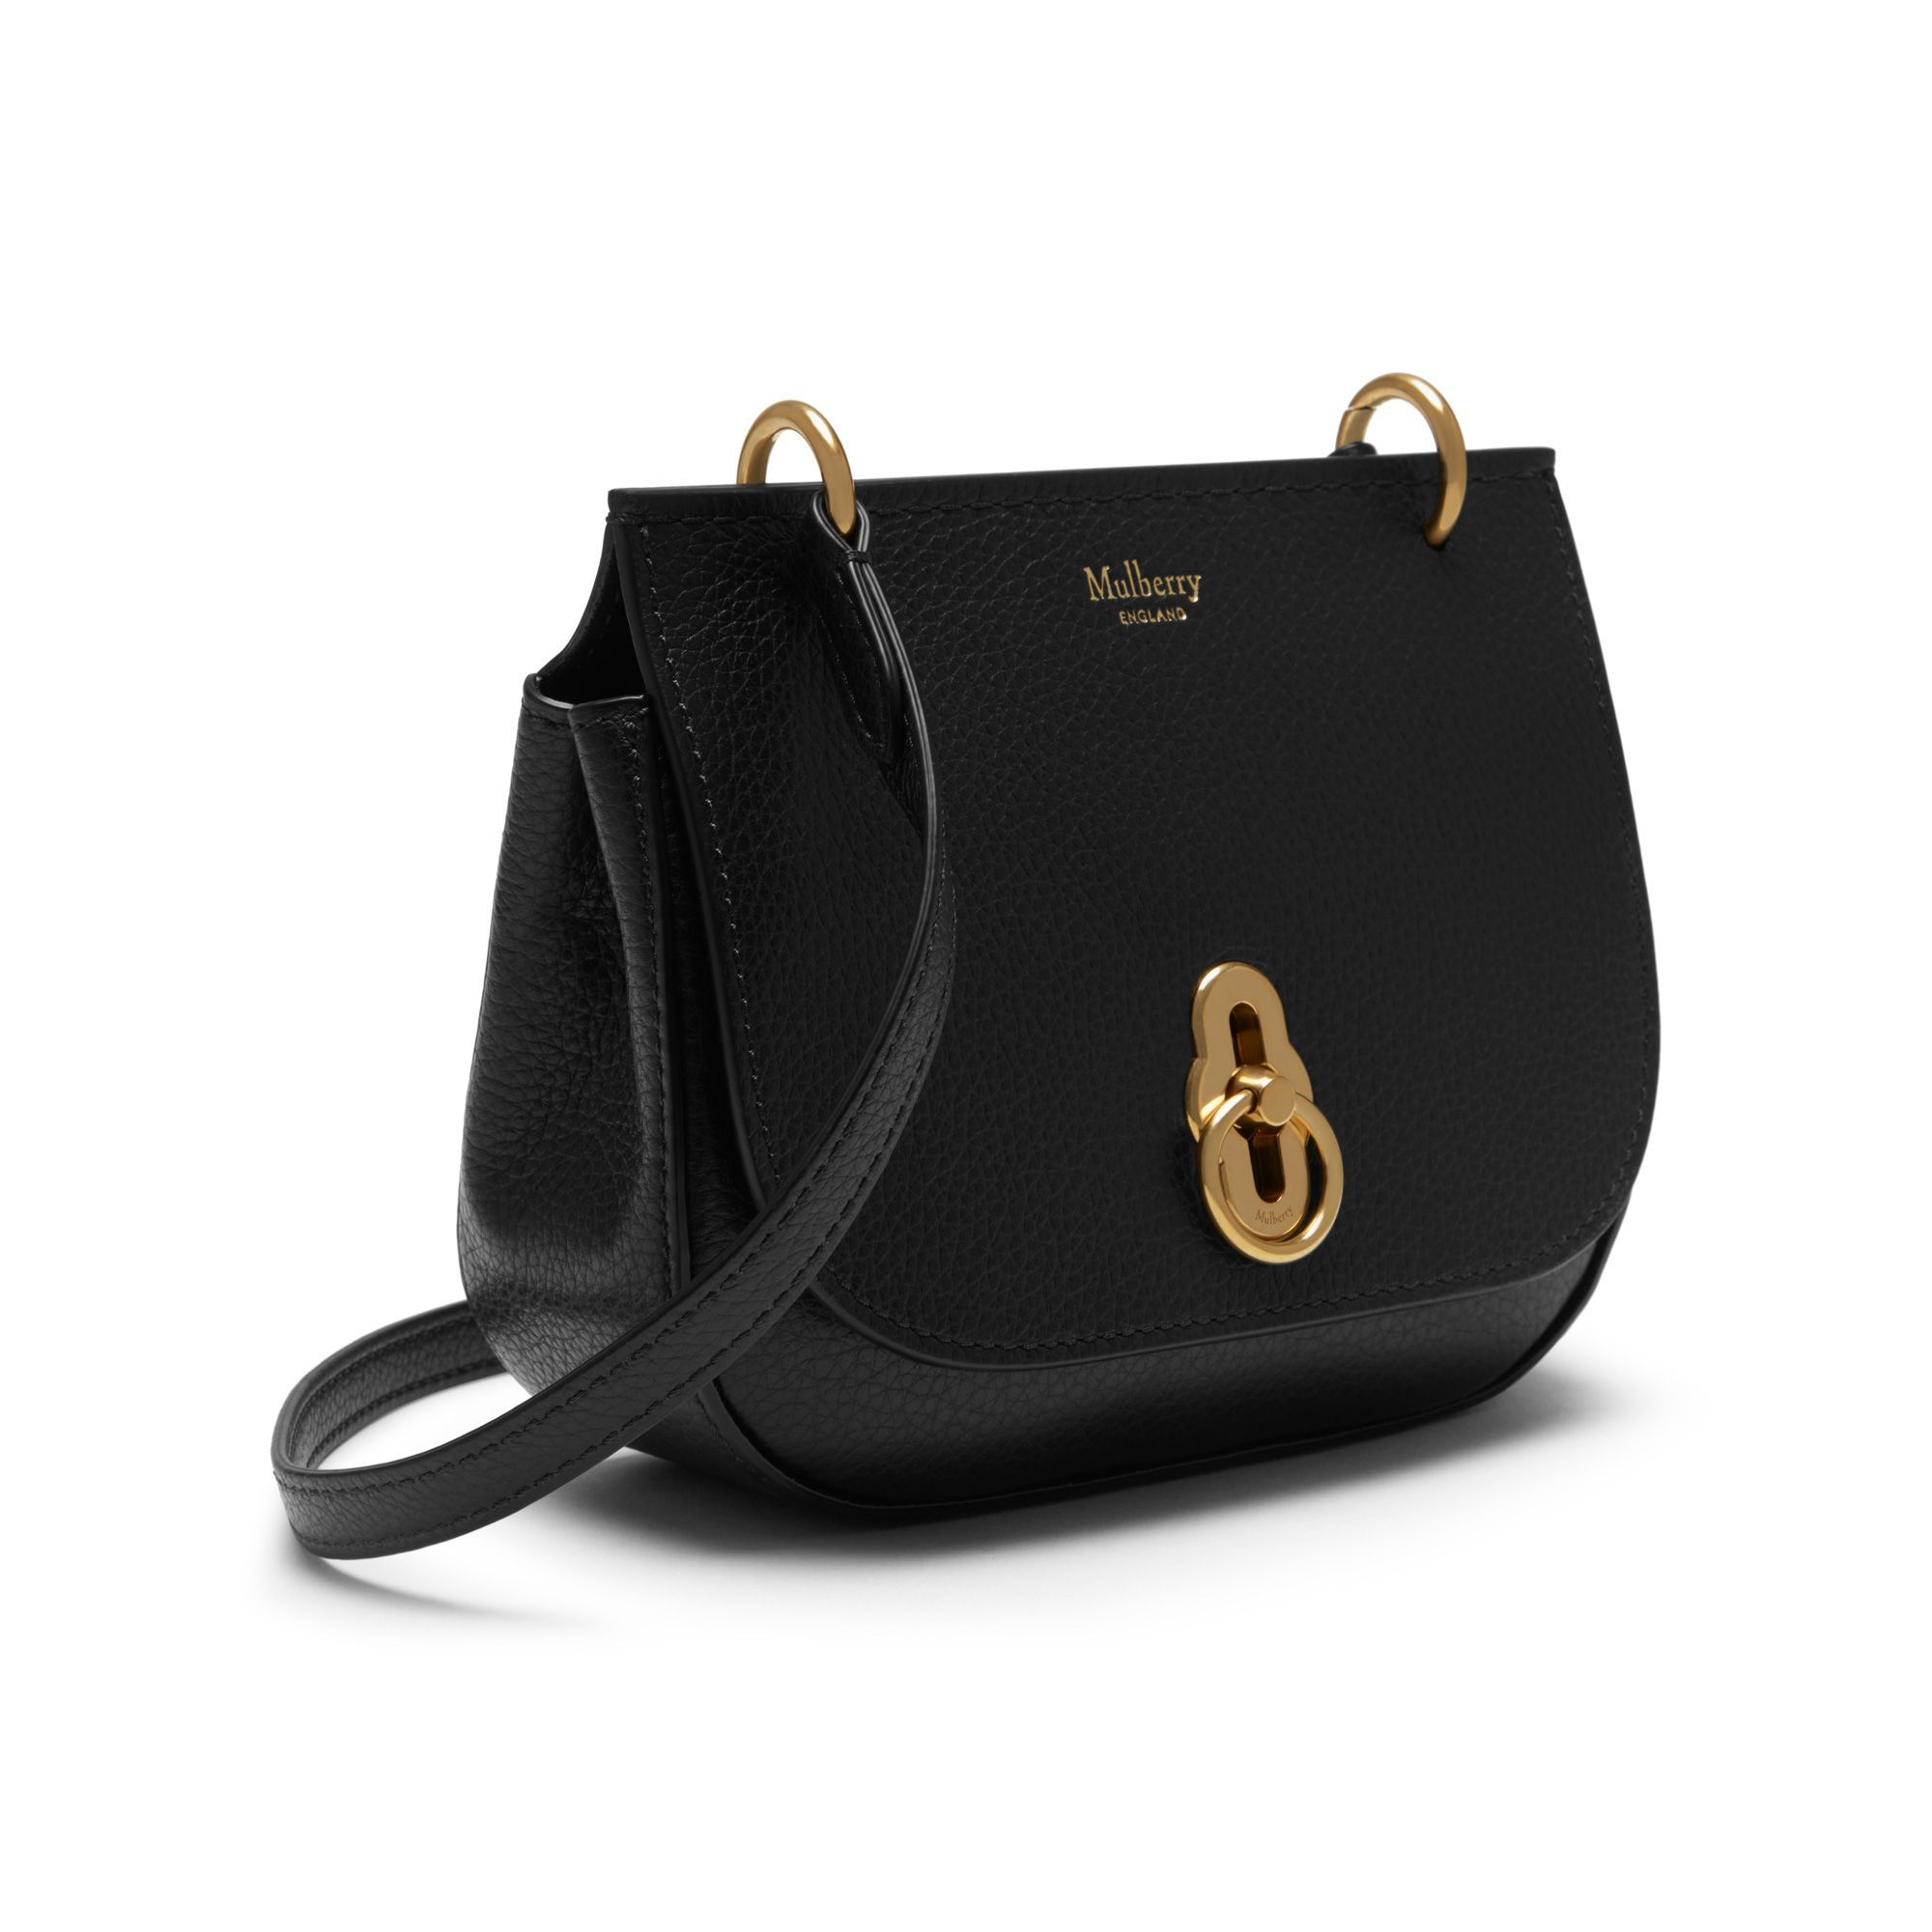 f019bb960b Shop the Mini Amberley Satchel in Black Small Classic Grain Leather at  Mulberry.com.